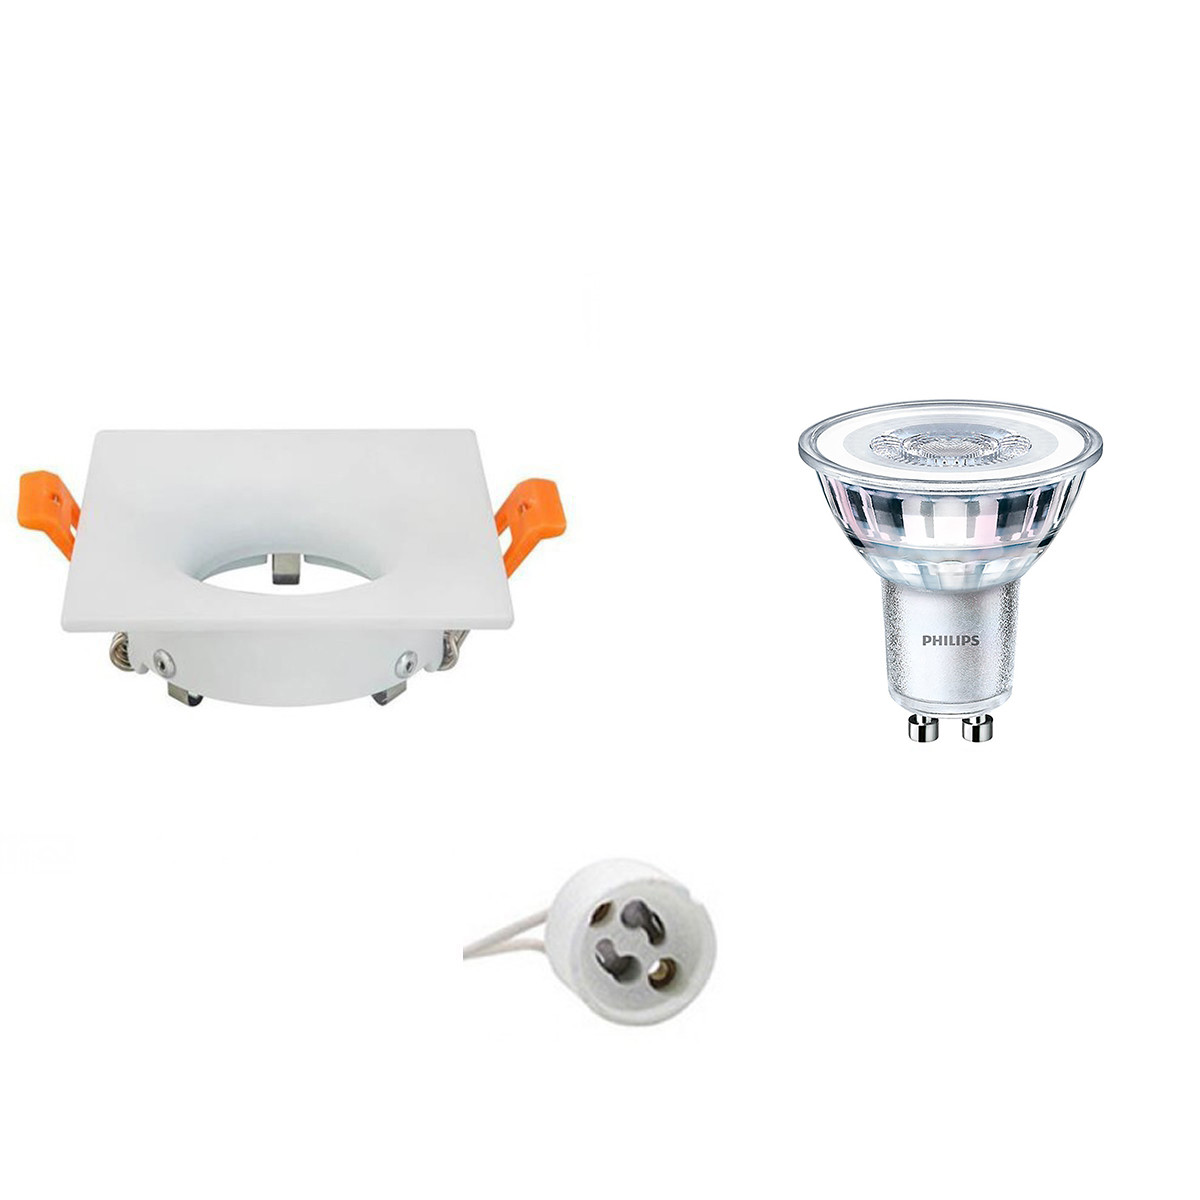 PHILIPS - LED Spot Set - CorePro 840 36D - GU10 Fitting - Dimbaar - Inbouw Vierkant - Mat Wit - 5W -